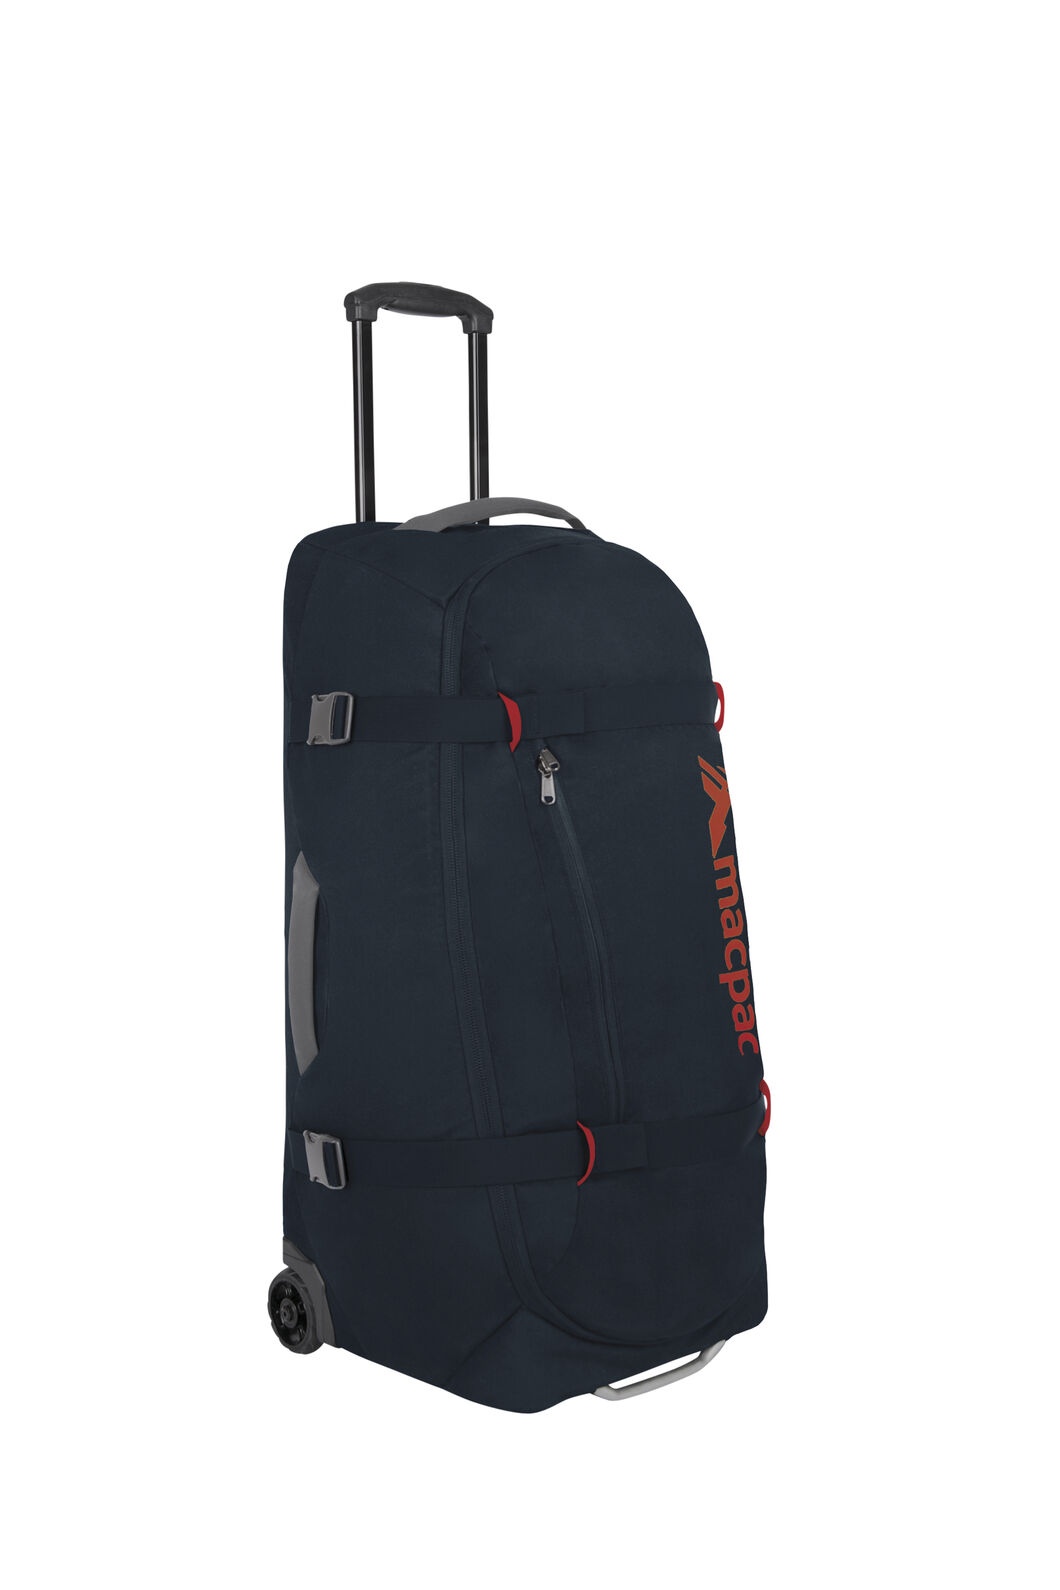 Macpac Global 55L Travel Bag, Carbon, hi-res